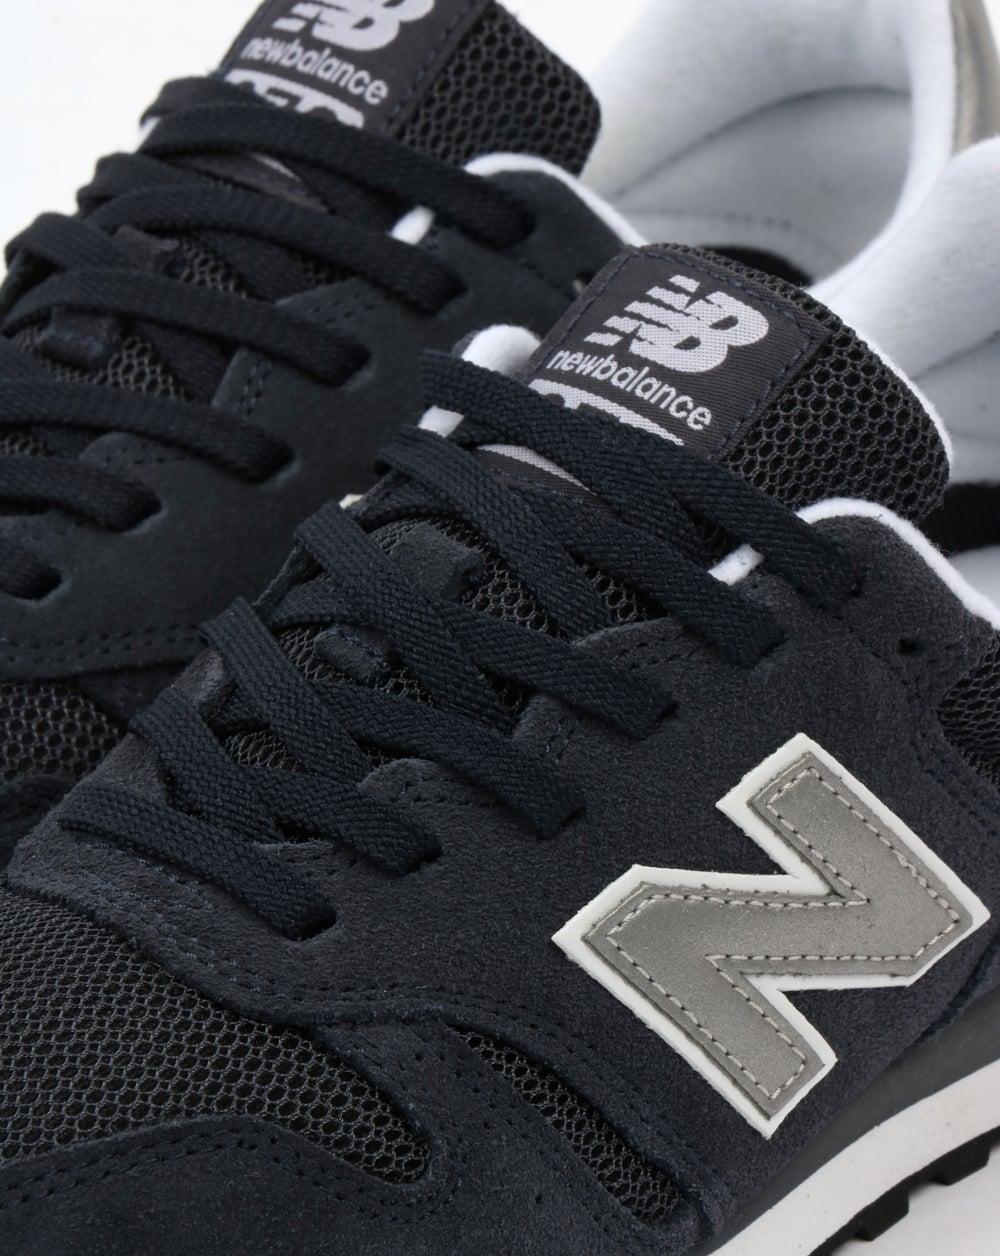 new balance modern classic 373 trainers in black